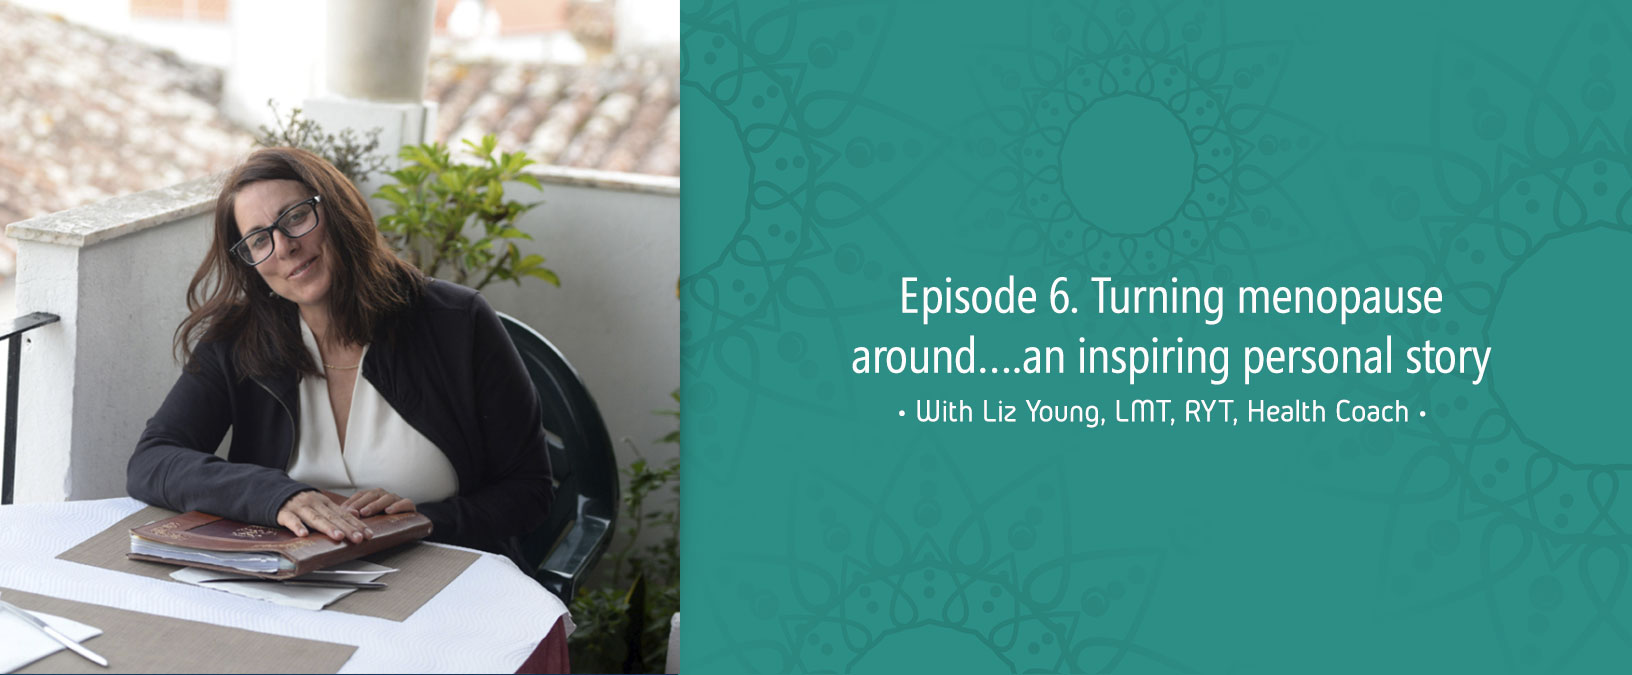 Episode 6. Turning menopause around…. an inspiring personal story